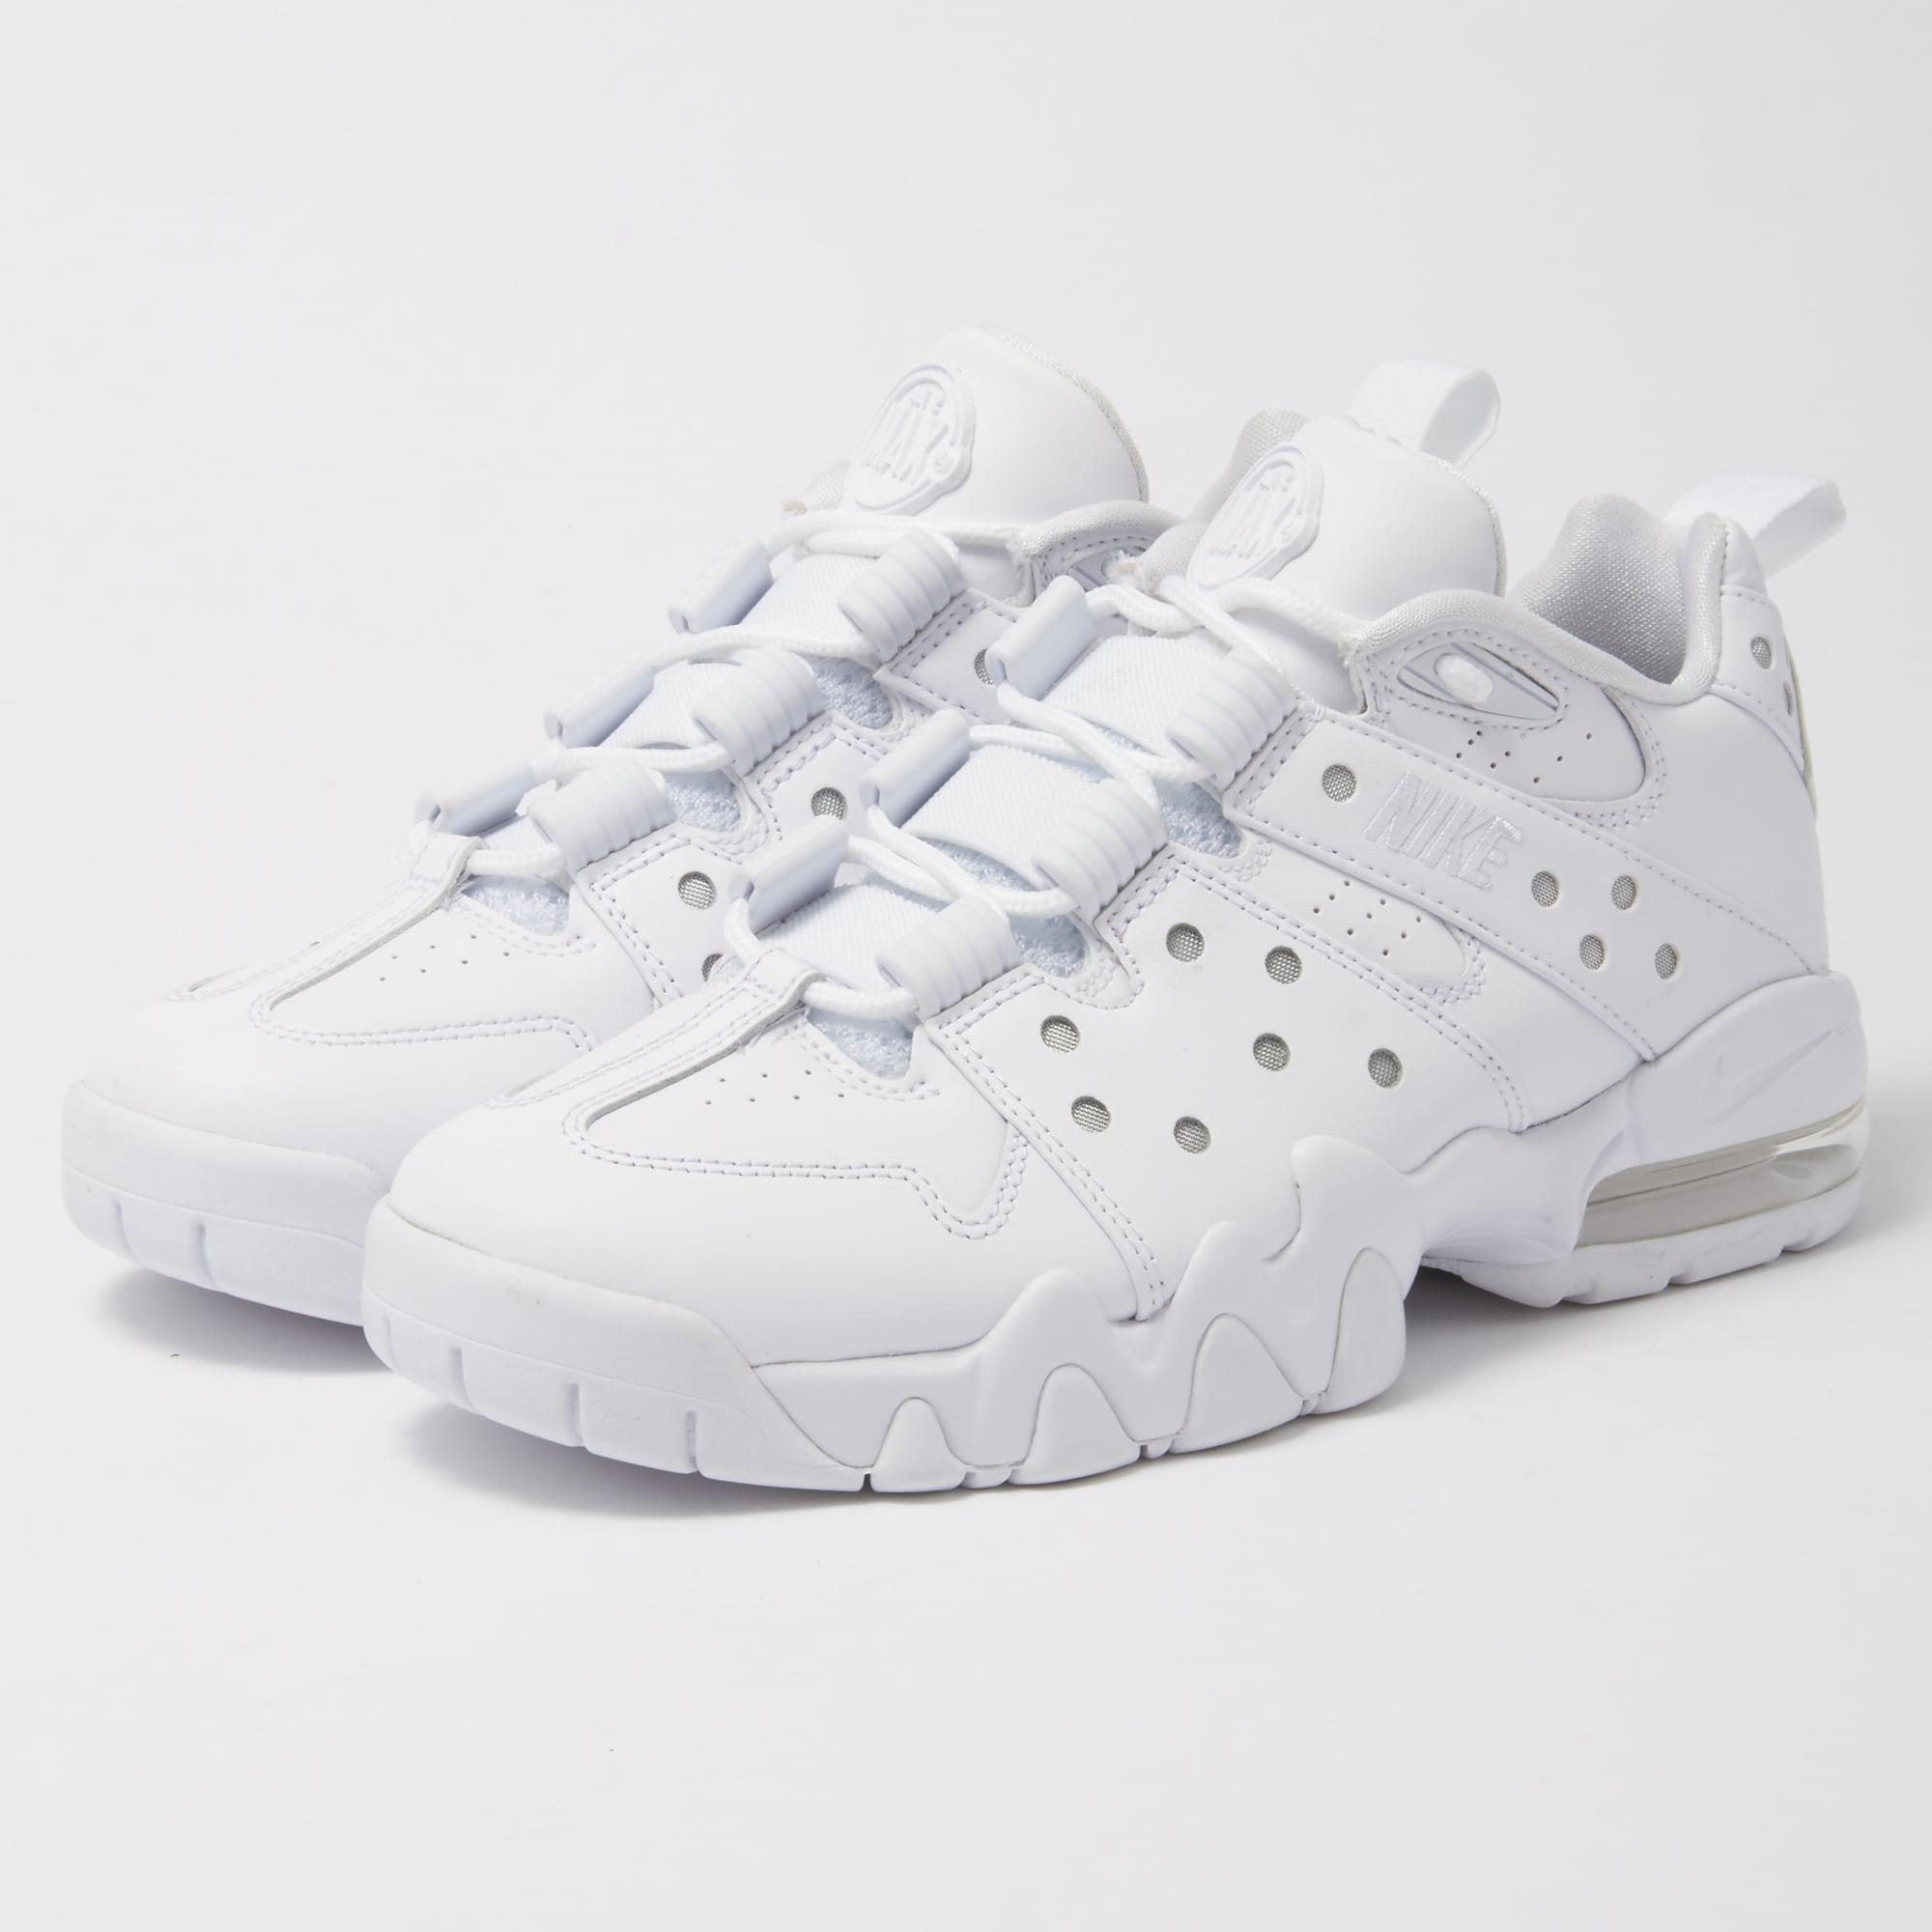 separation shoes 679dc d008a Nike Air Max Cb 94 Low in White for Men - Lyst